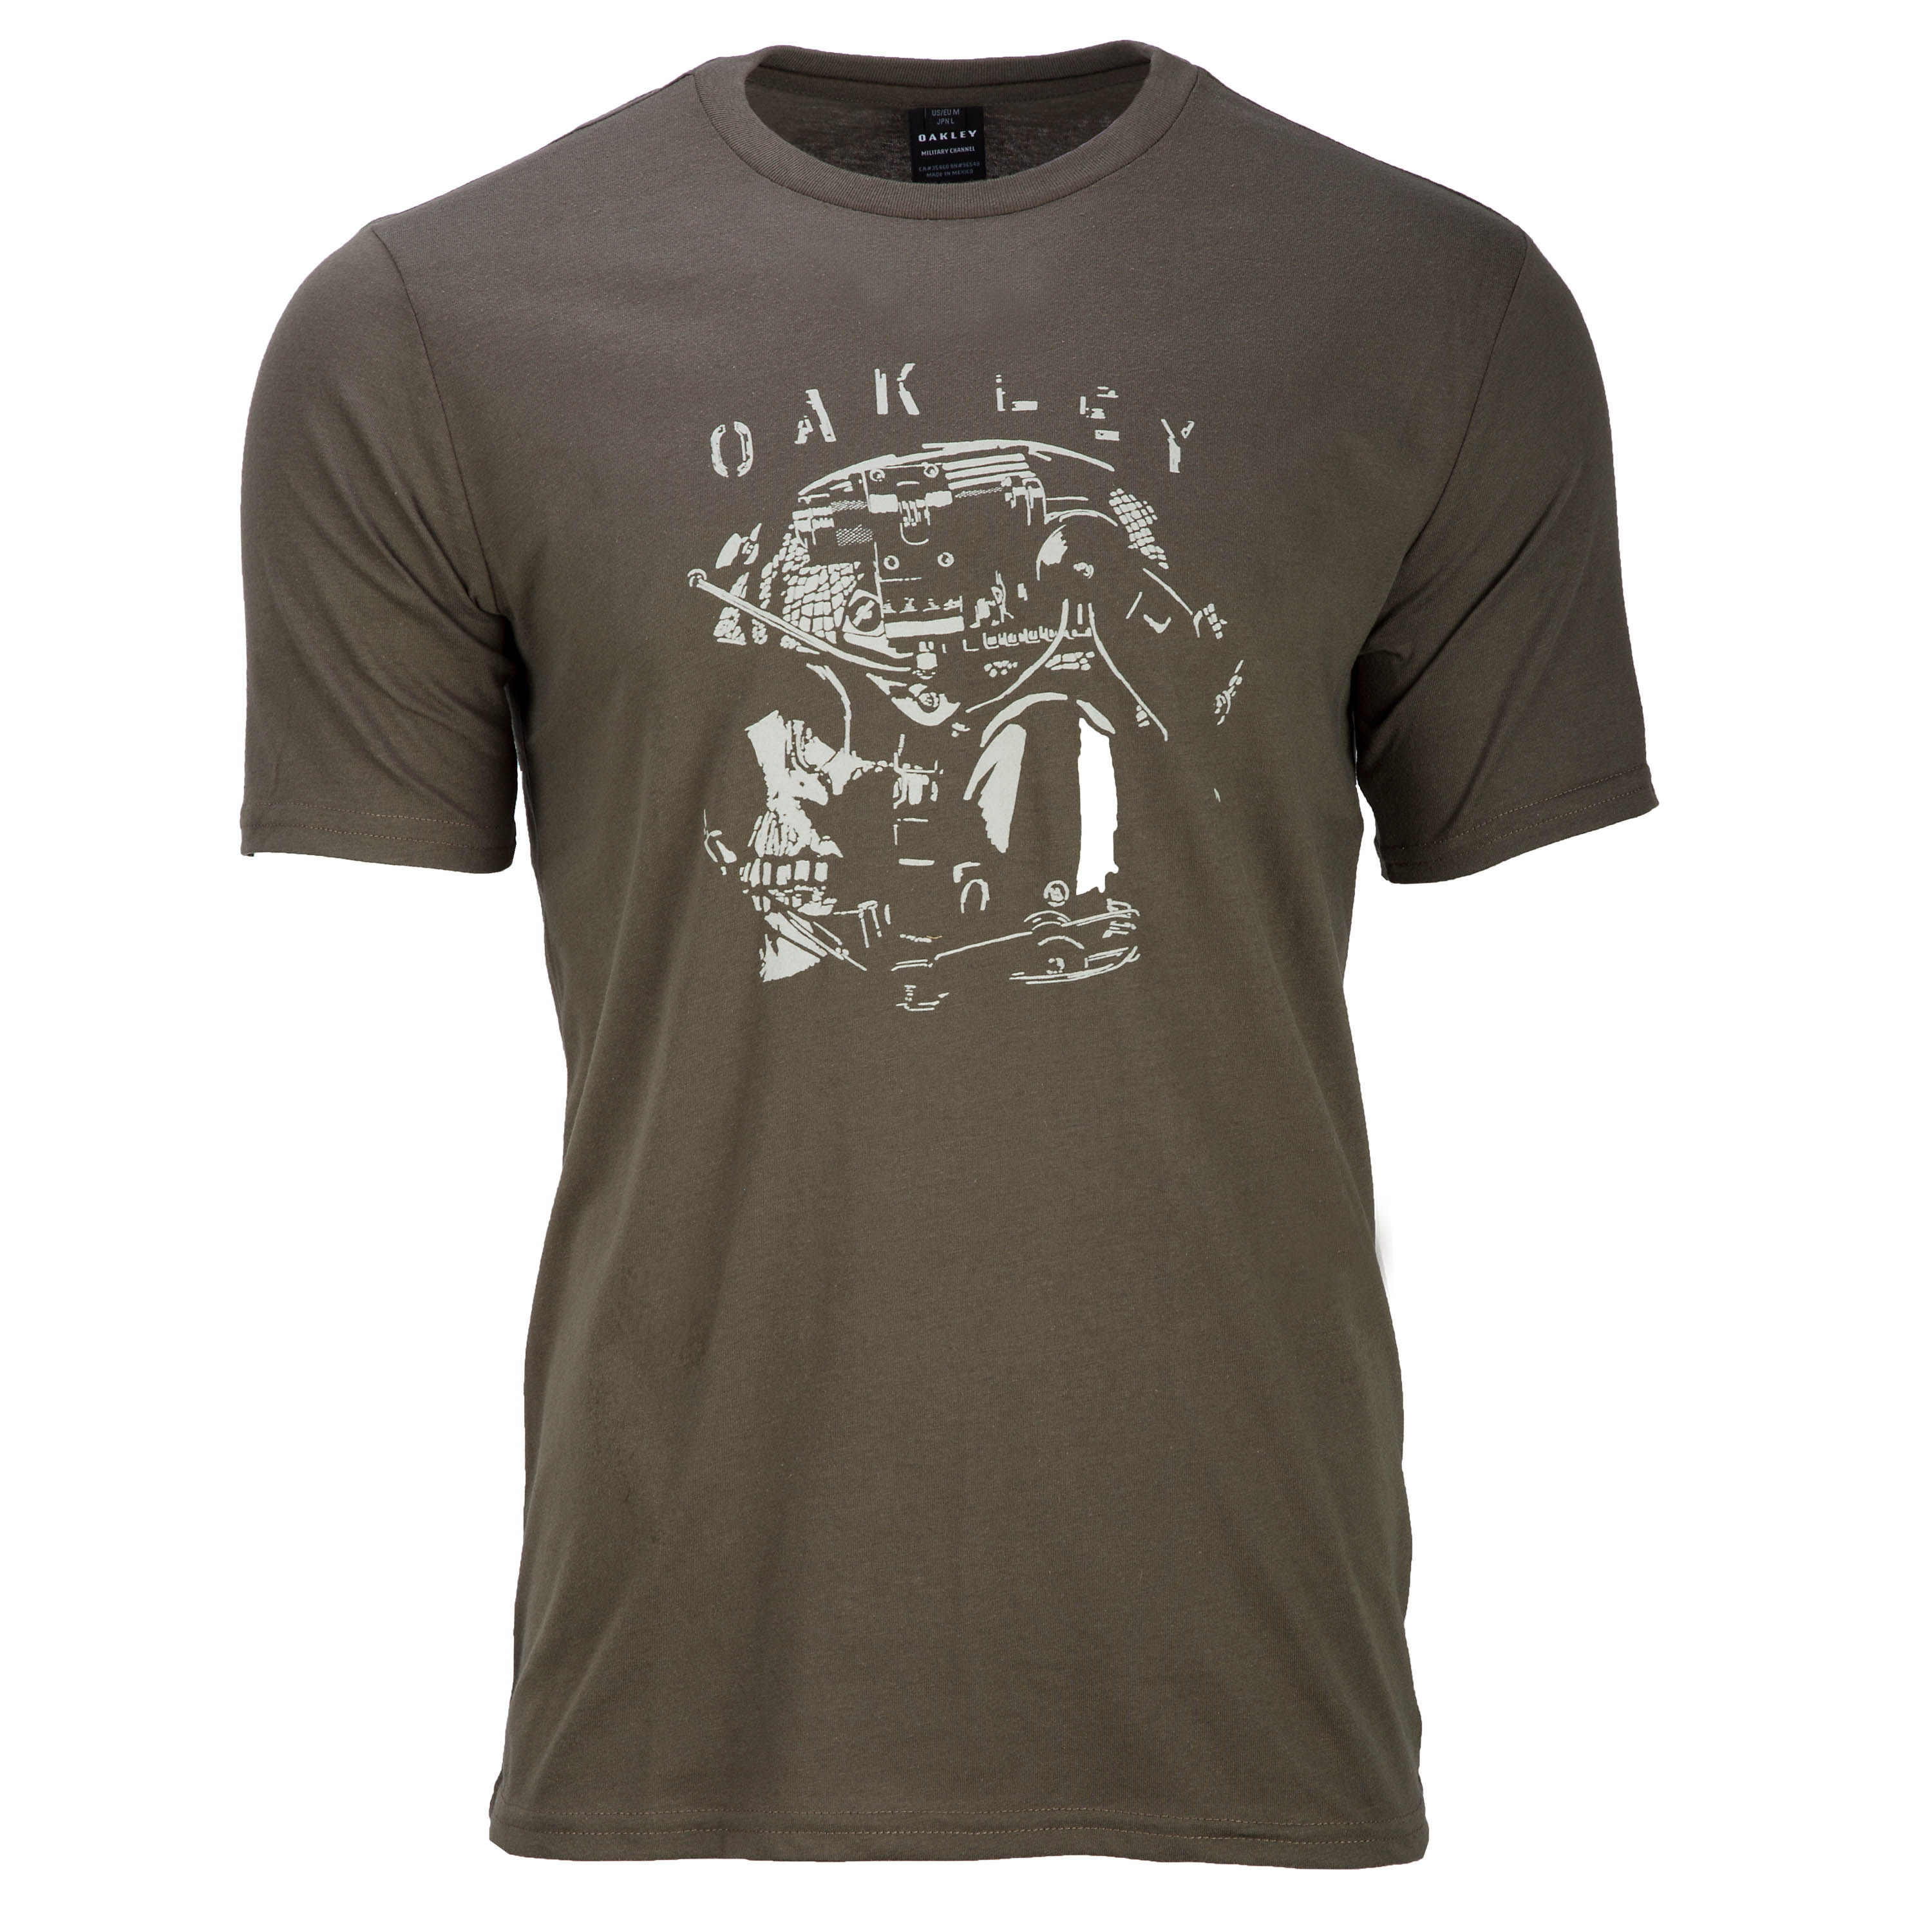 Oakley T-Shirt The Operator dark brush